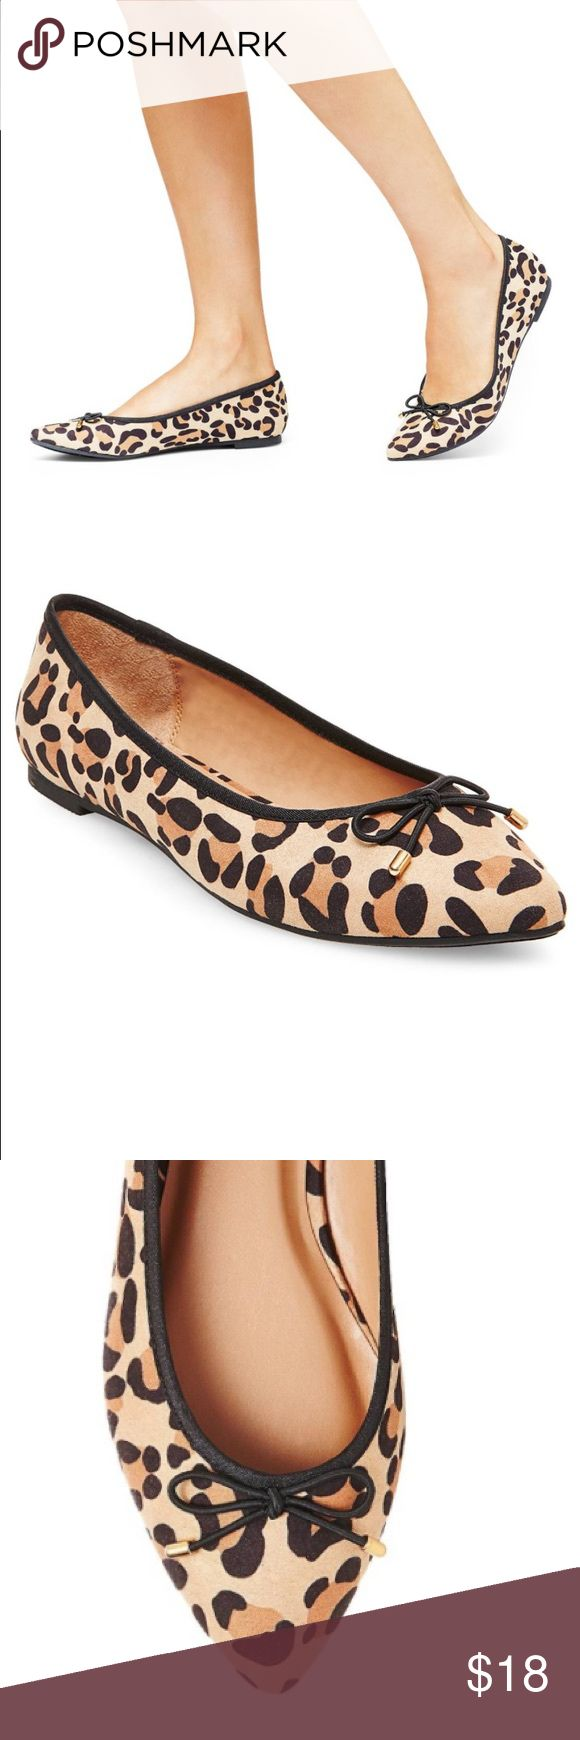 New! Leopard pointed ballet flats size 8 New! Leopard pointed ballet flats size 8. Pointed ballet flat Faux leather upper with bow detail Cushioned insole, non-marking poly/rubber outsole Merona Shoes Flats & Loafers